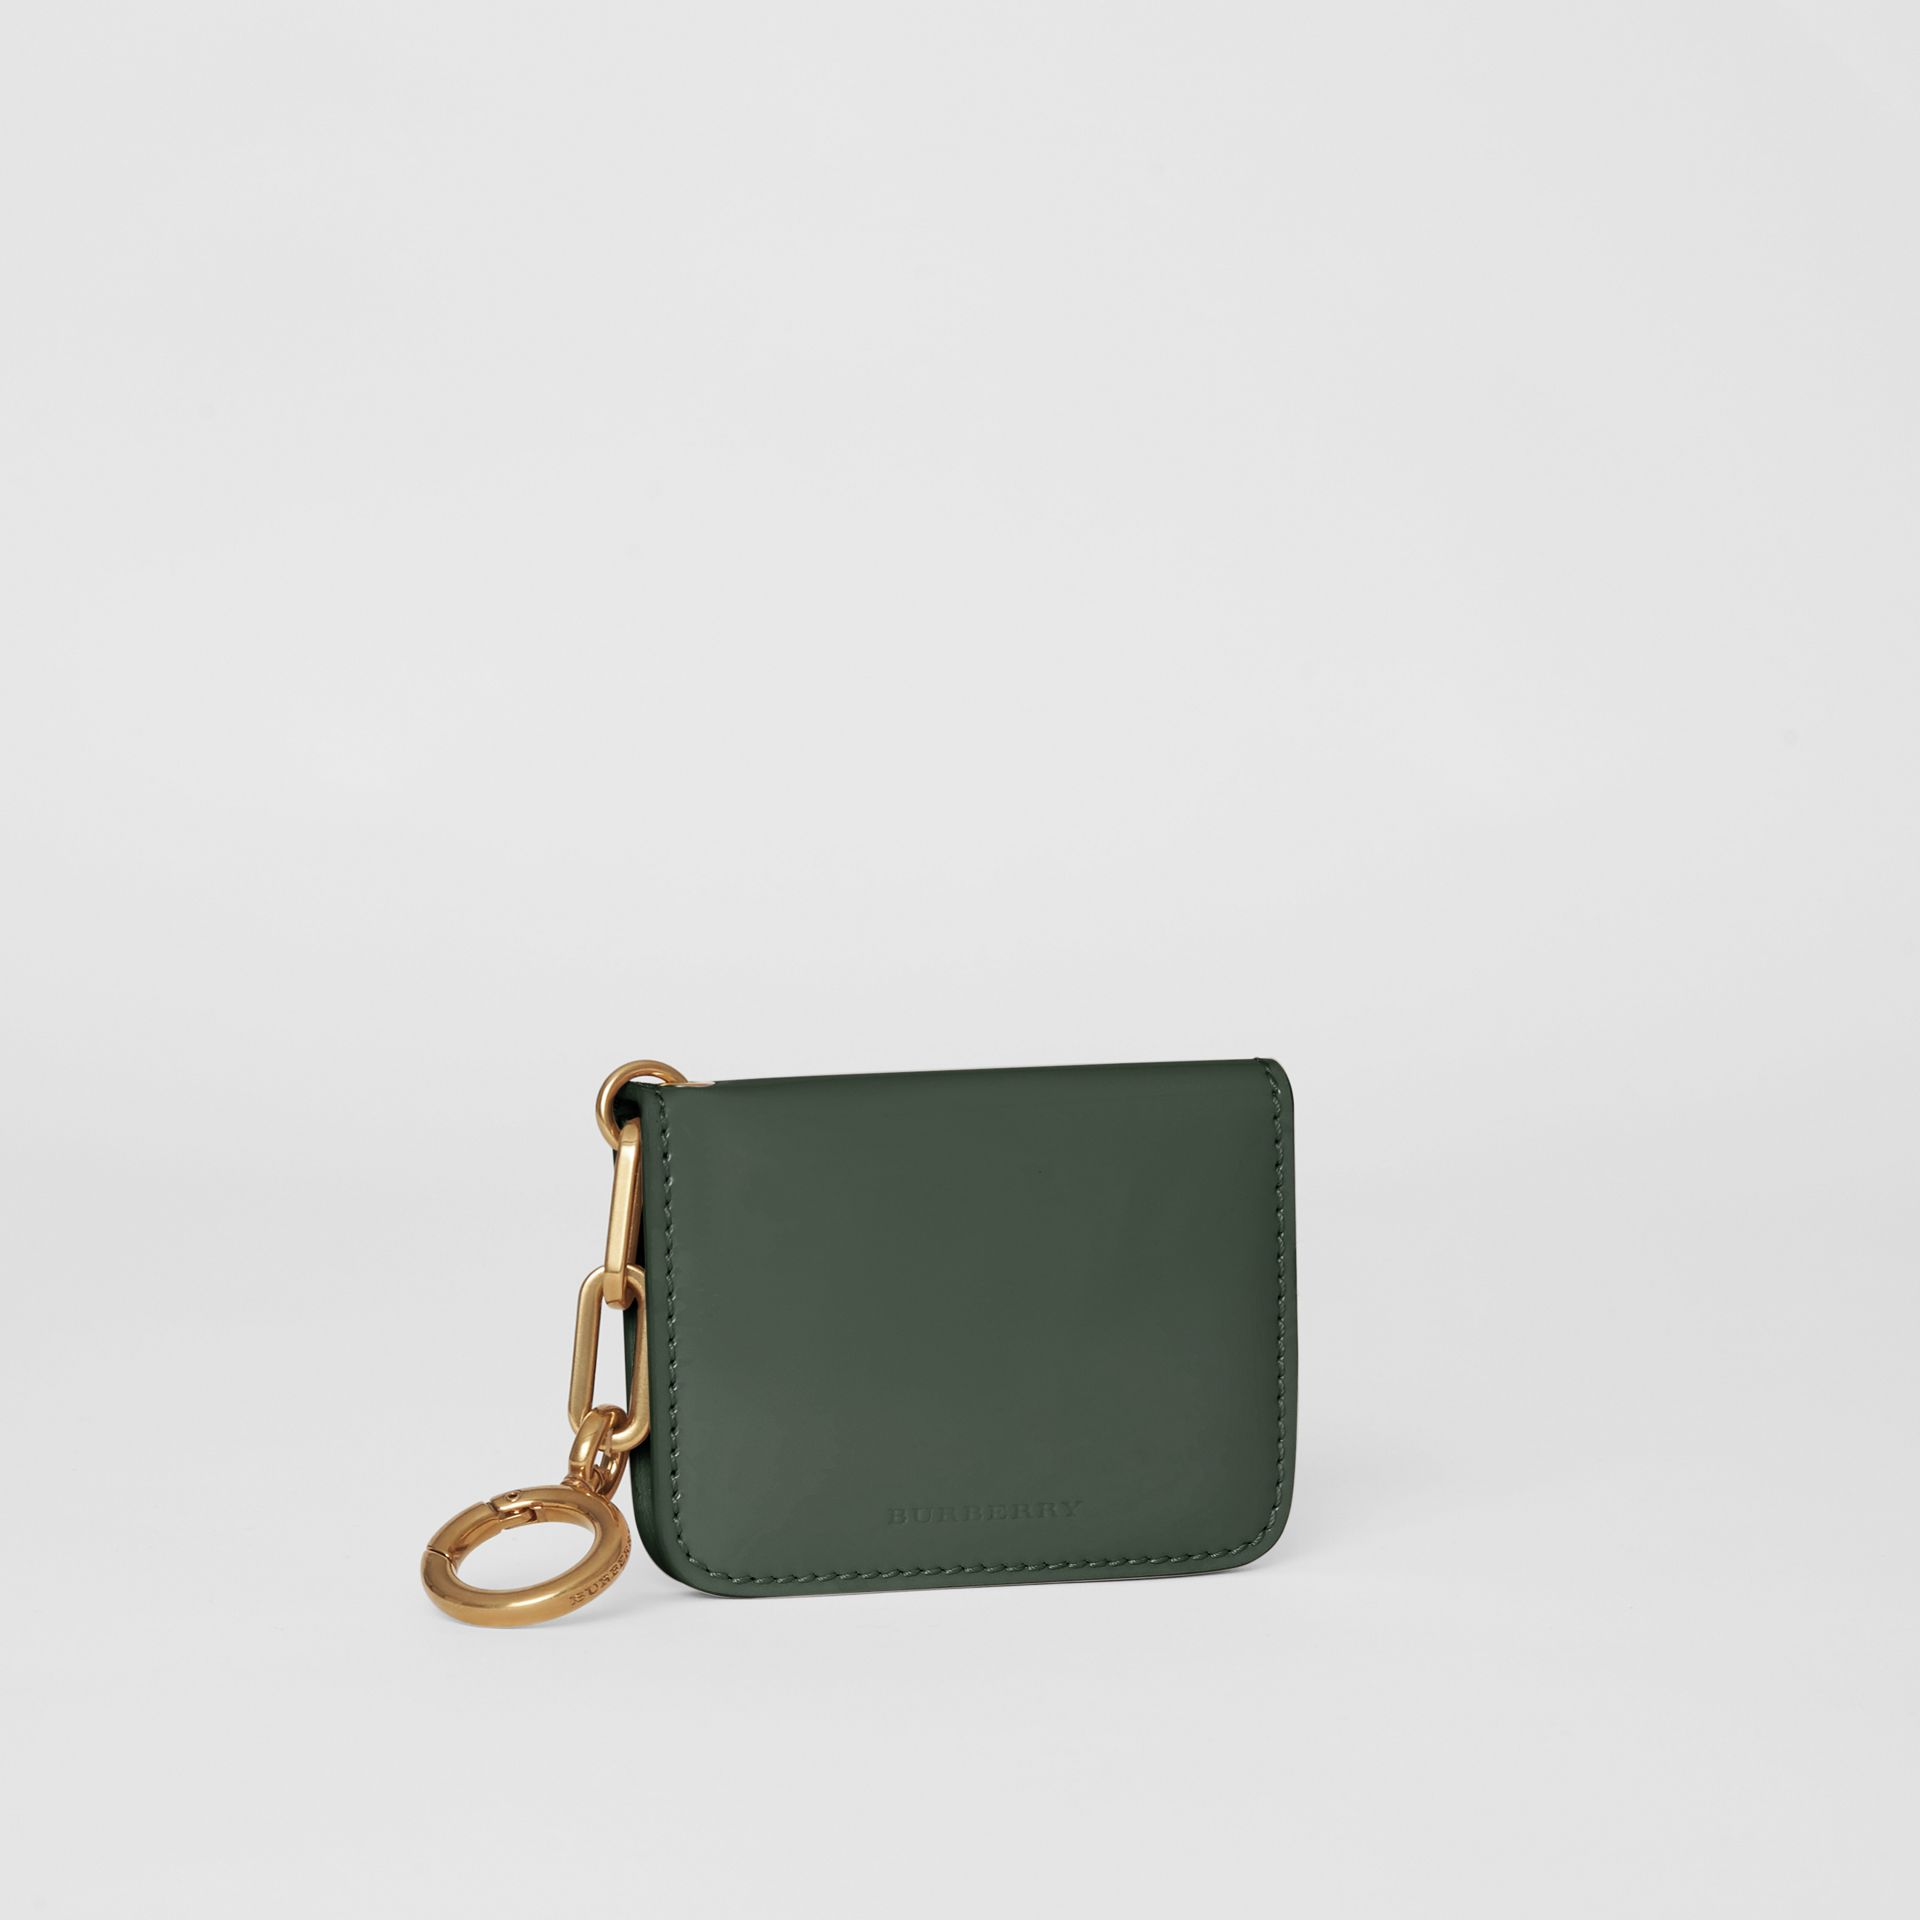 Link Detail Patent Leather ID Card Case Charm in Dark Forest Green - Women | Burberry United States - gallery image 4